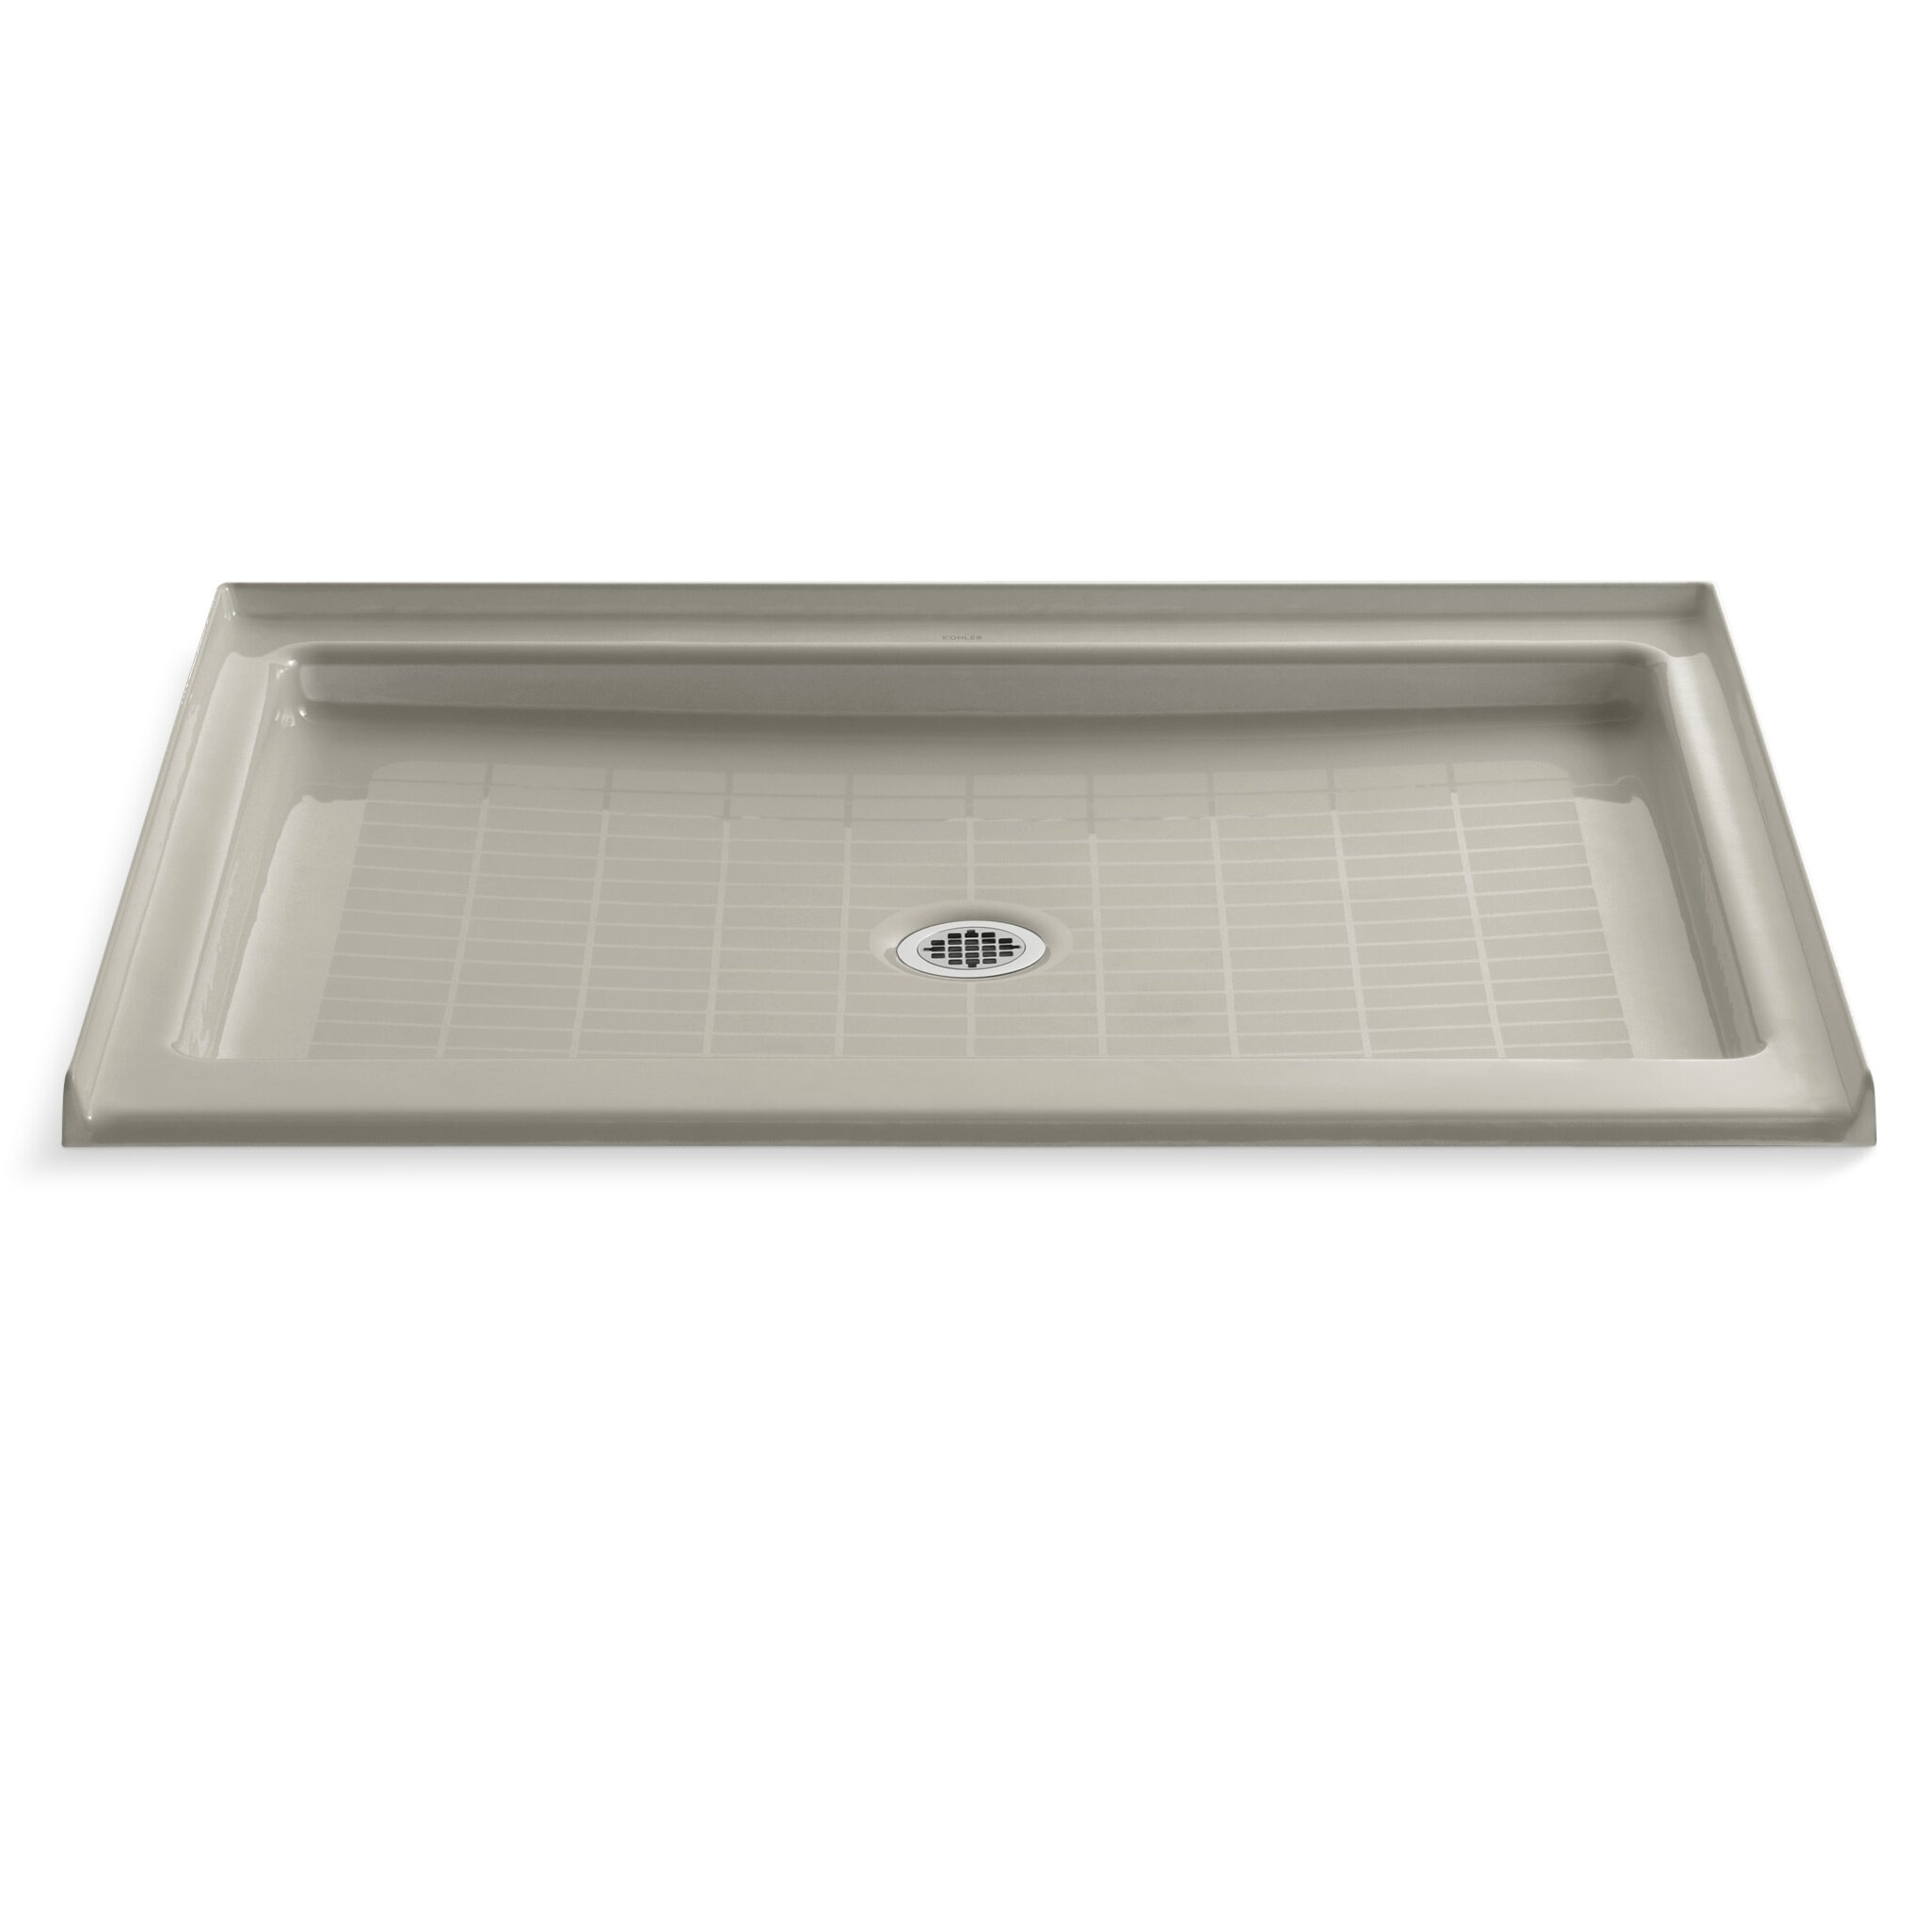 Kohler Purist 48 X 36 Single Threshold Center Drain